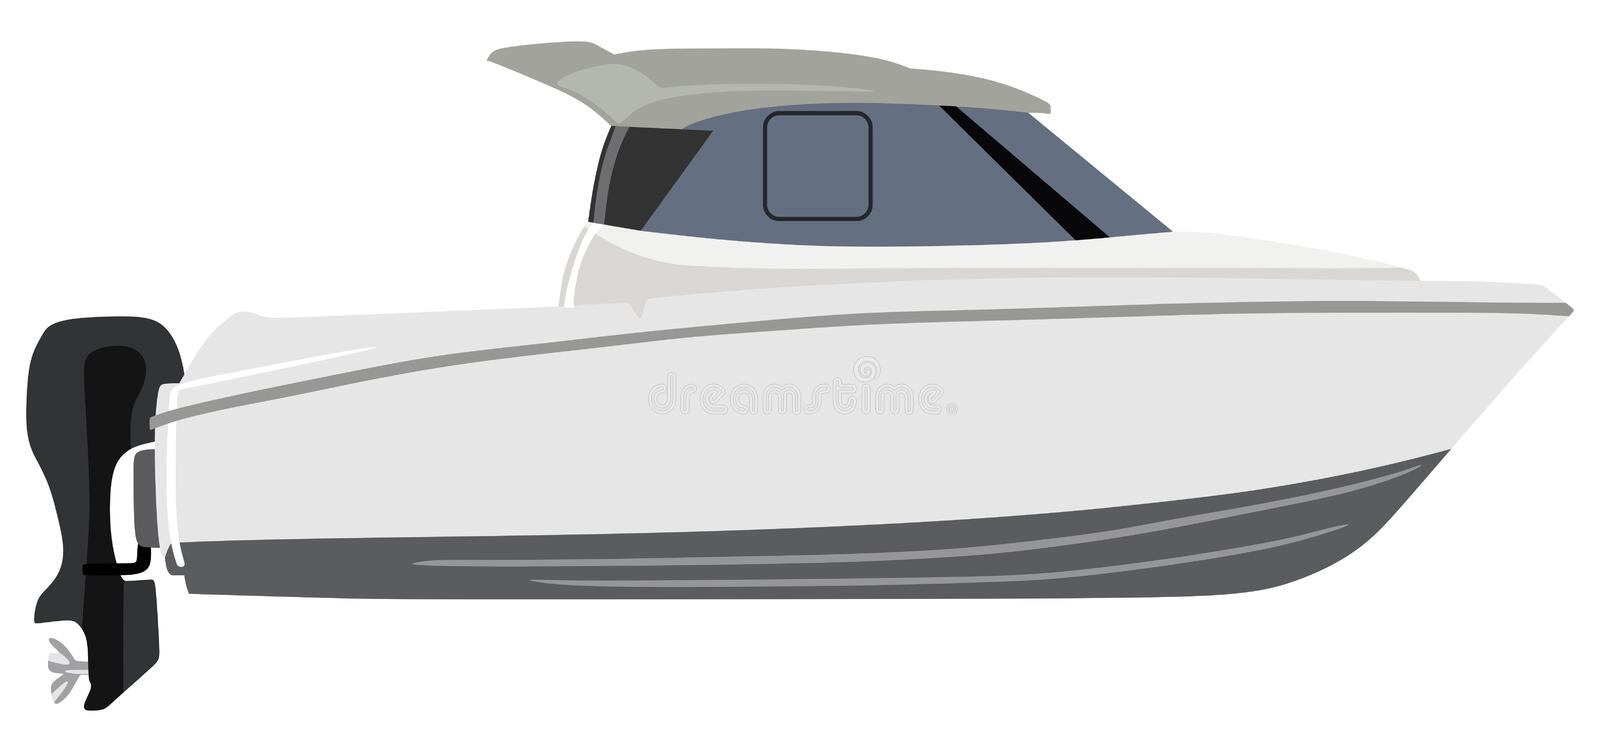 motorboat illustration stock